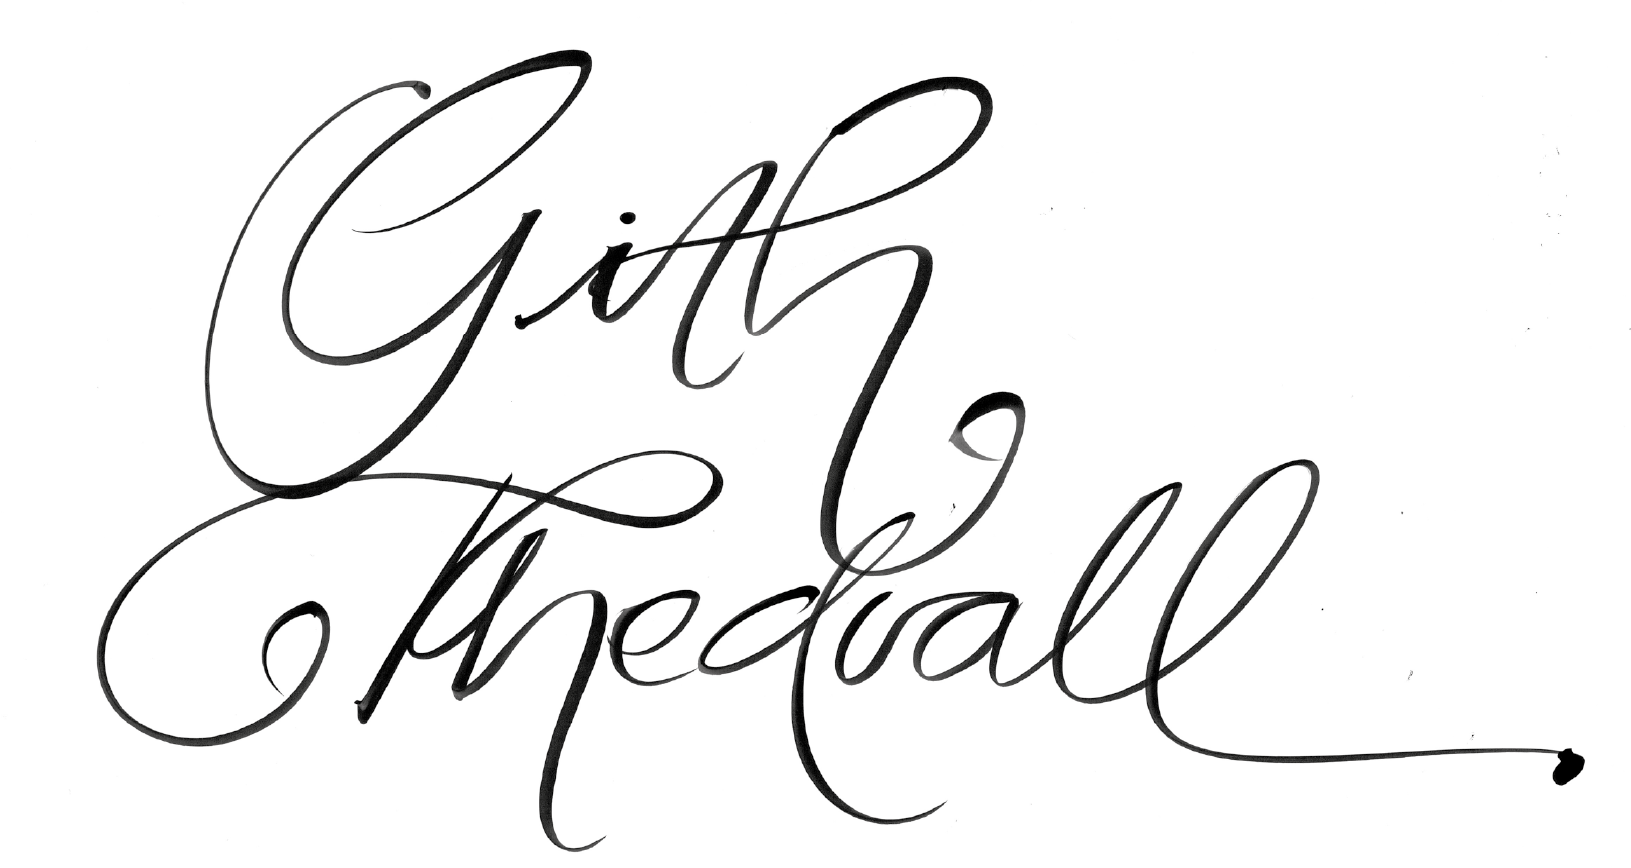 Logotyp Gith Thedvall